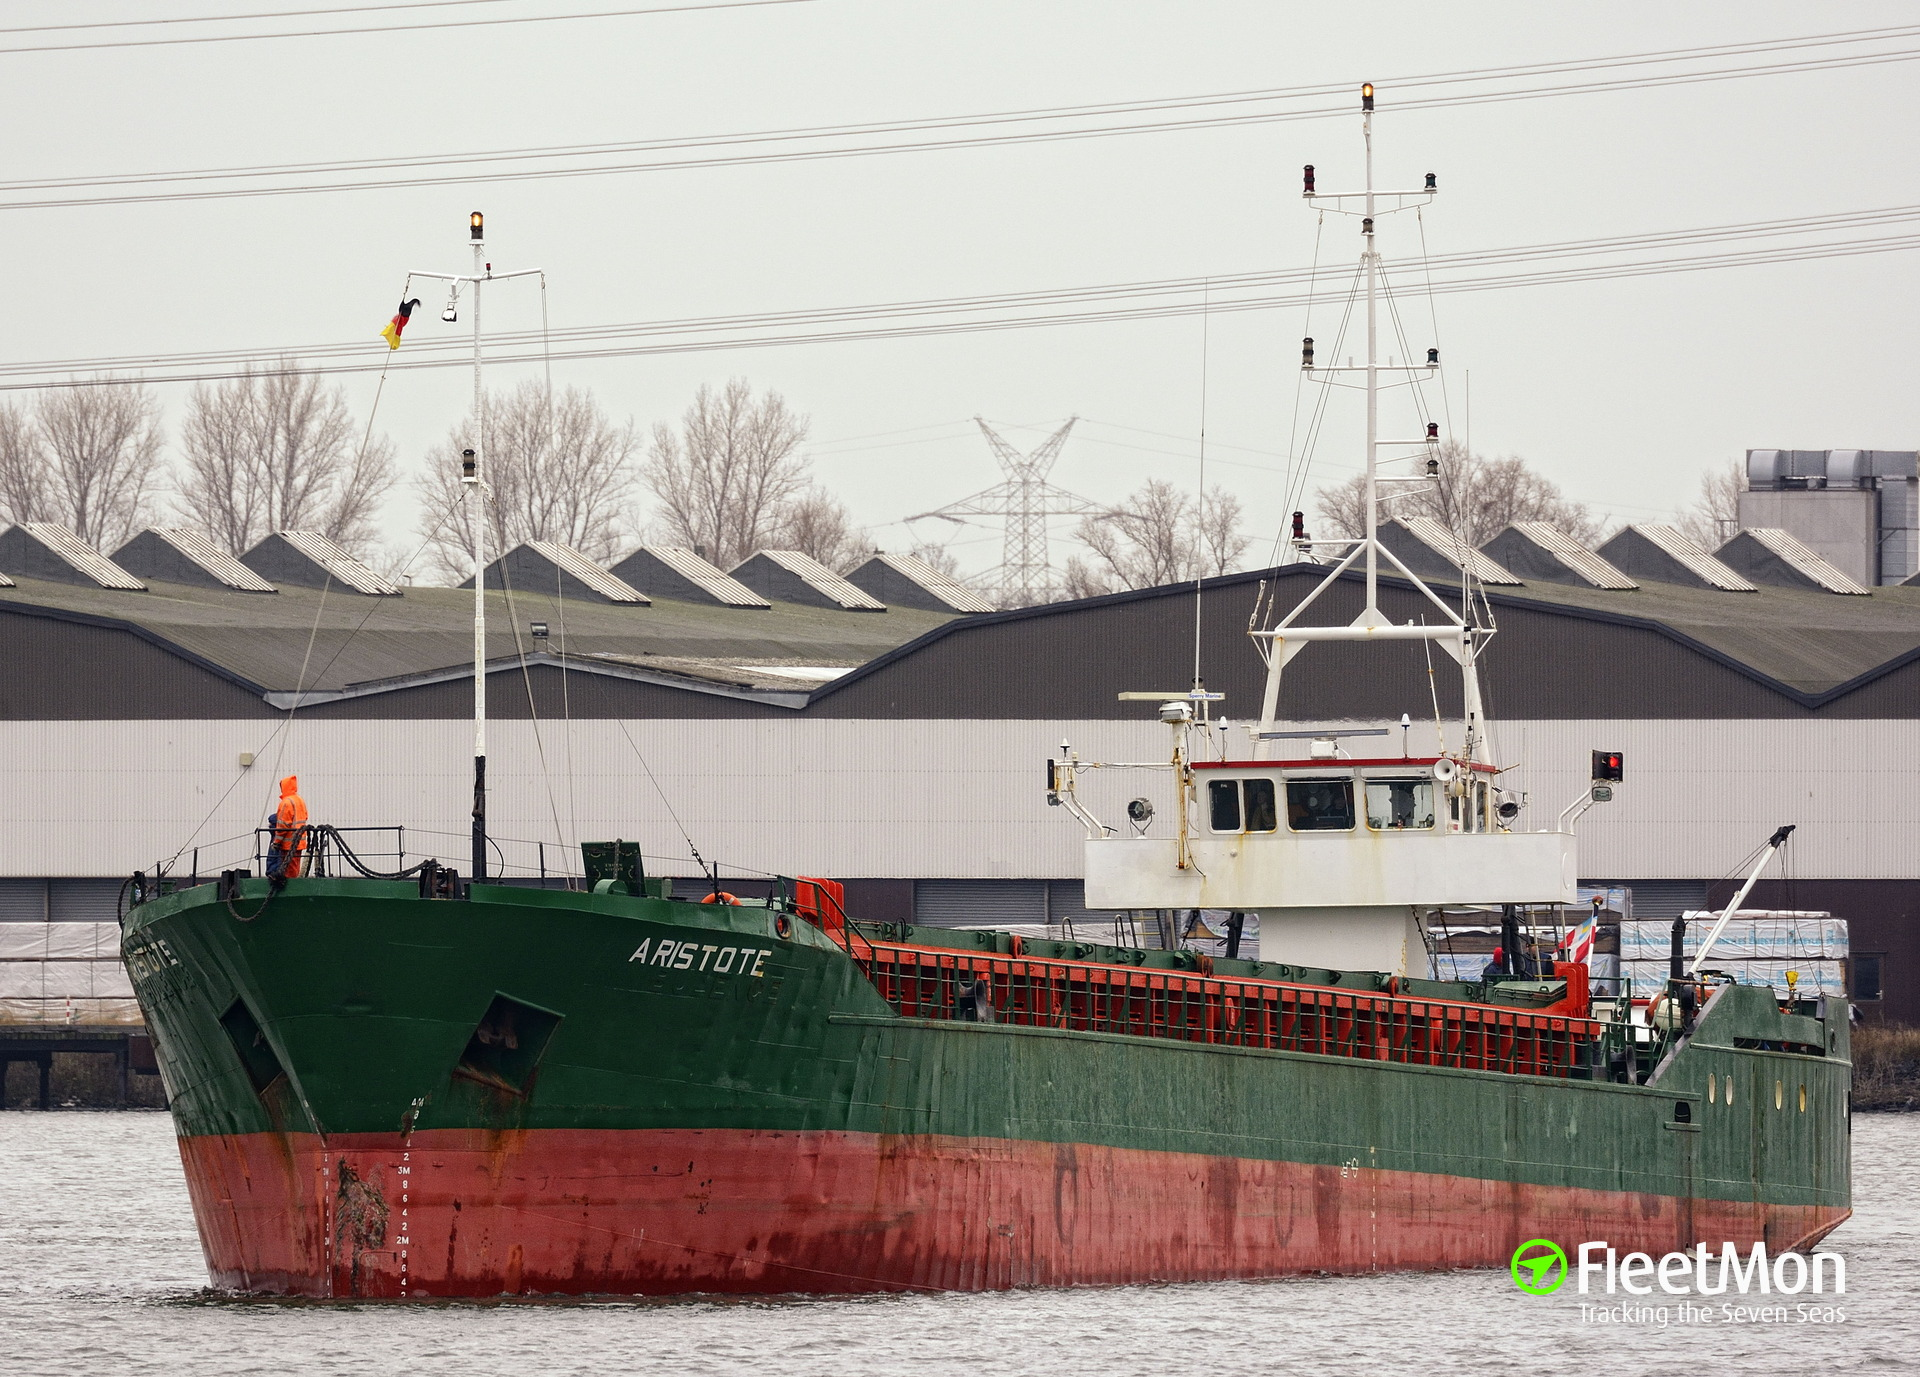 General cargo vessel Aristote suffered engine failure in English Channel